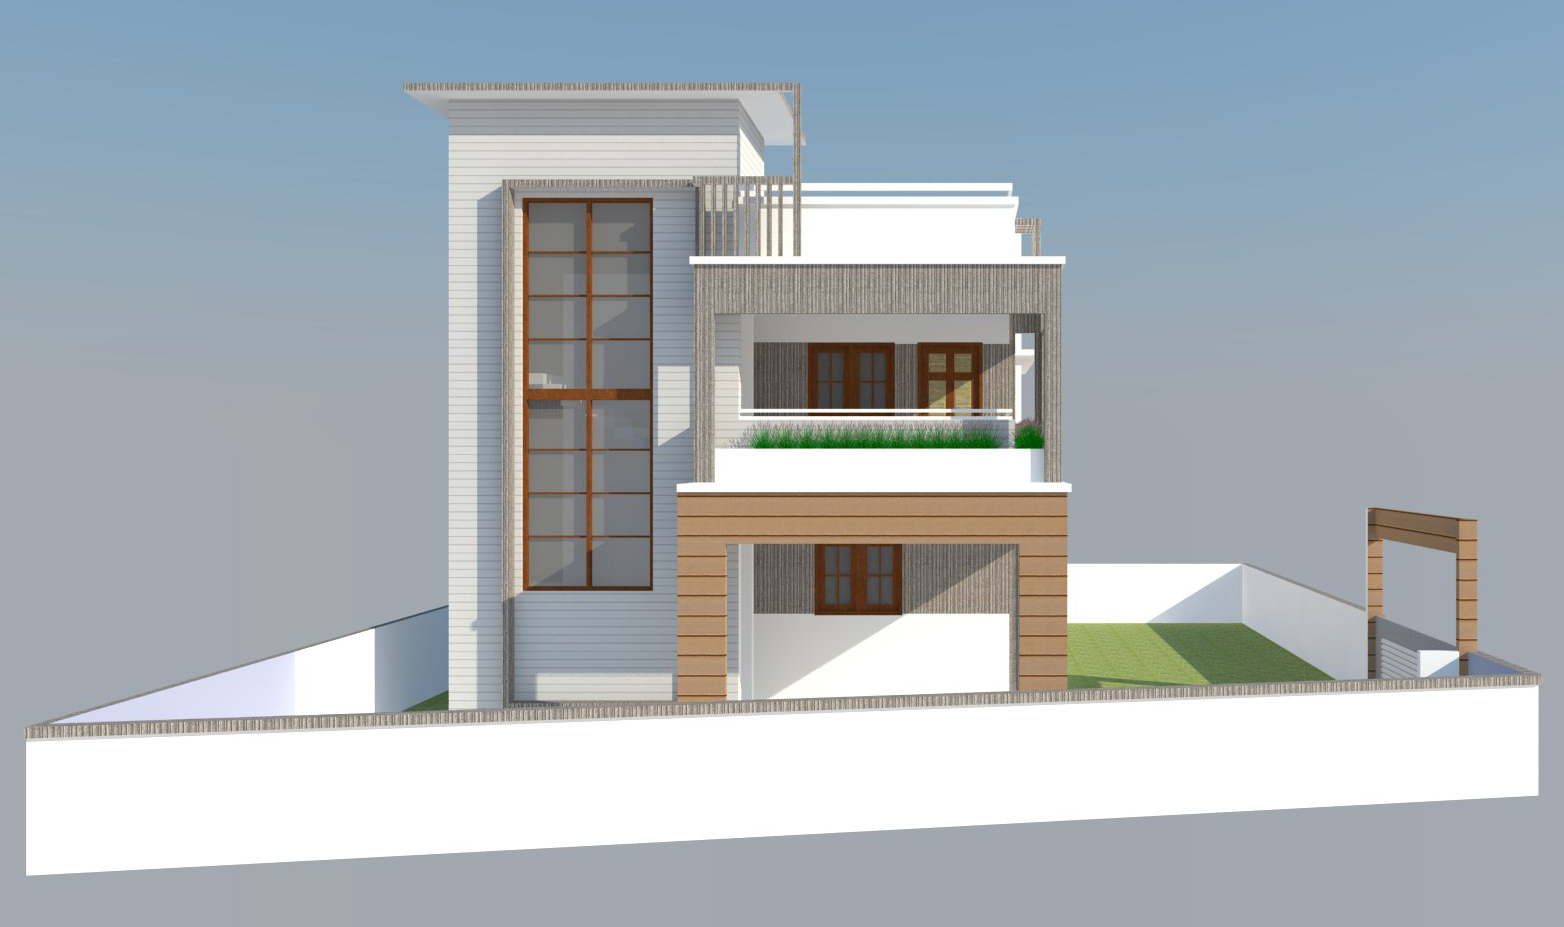 Front Elevation Images Free Download : Free download front elevation building image in interior